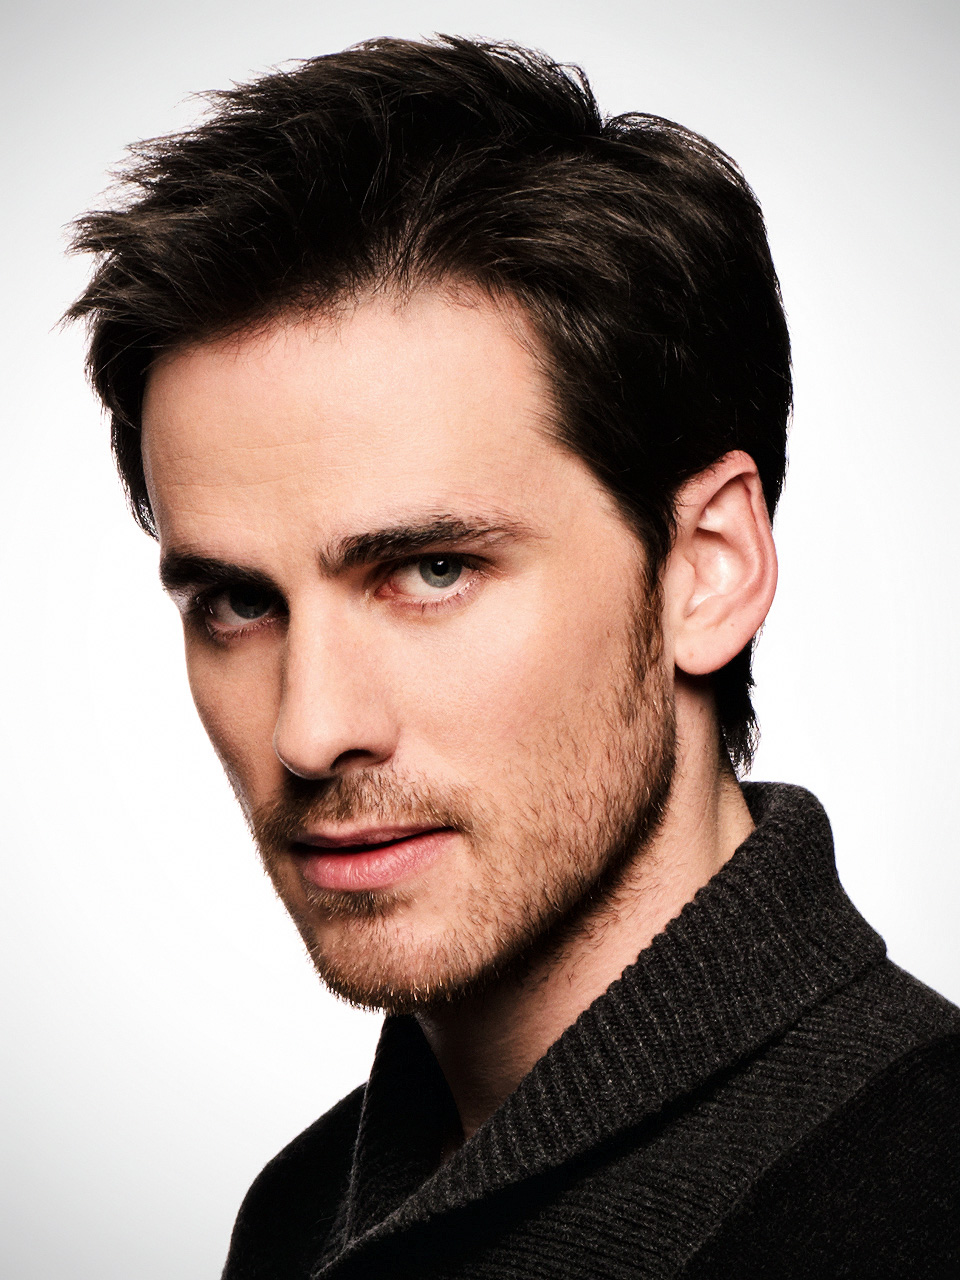 Once Upon a Time's Colin O'Donoghue weighs in on the series' latest Hook revelation